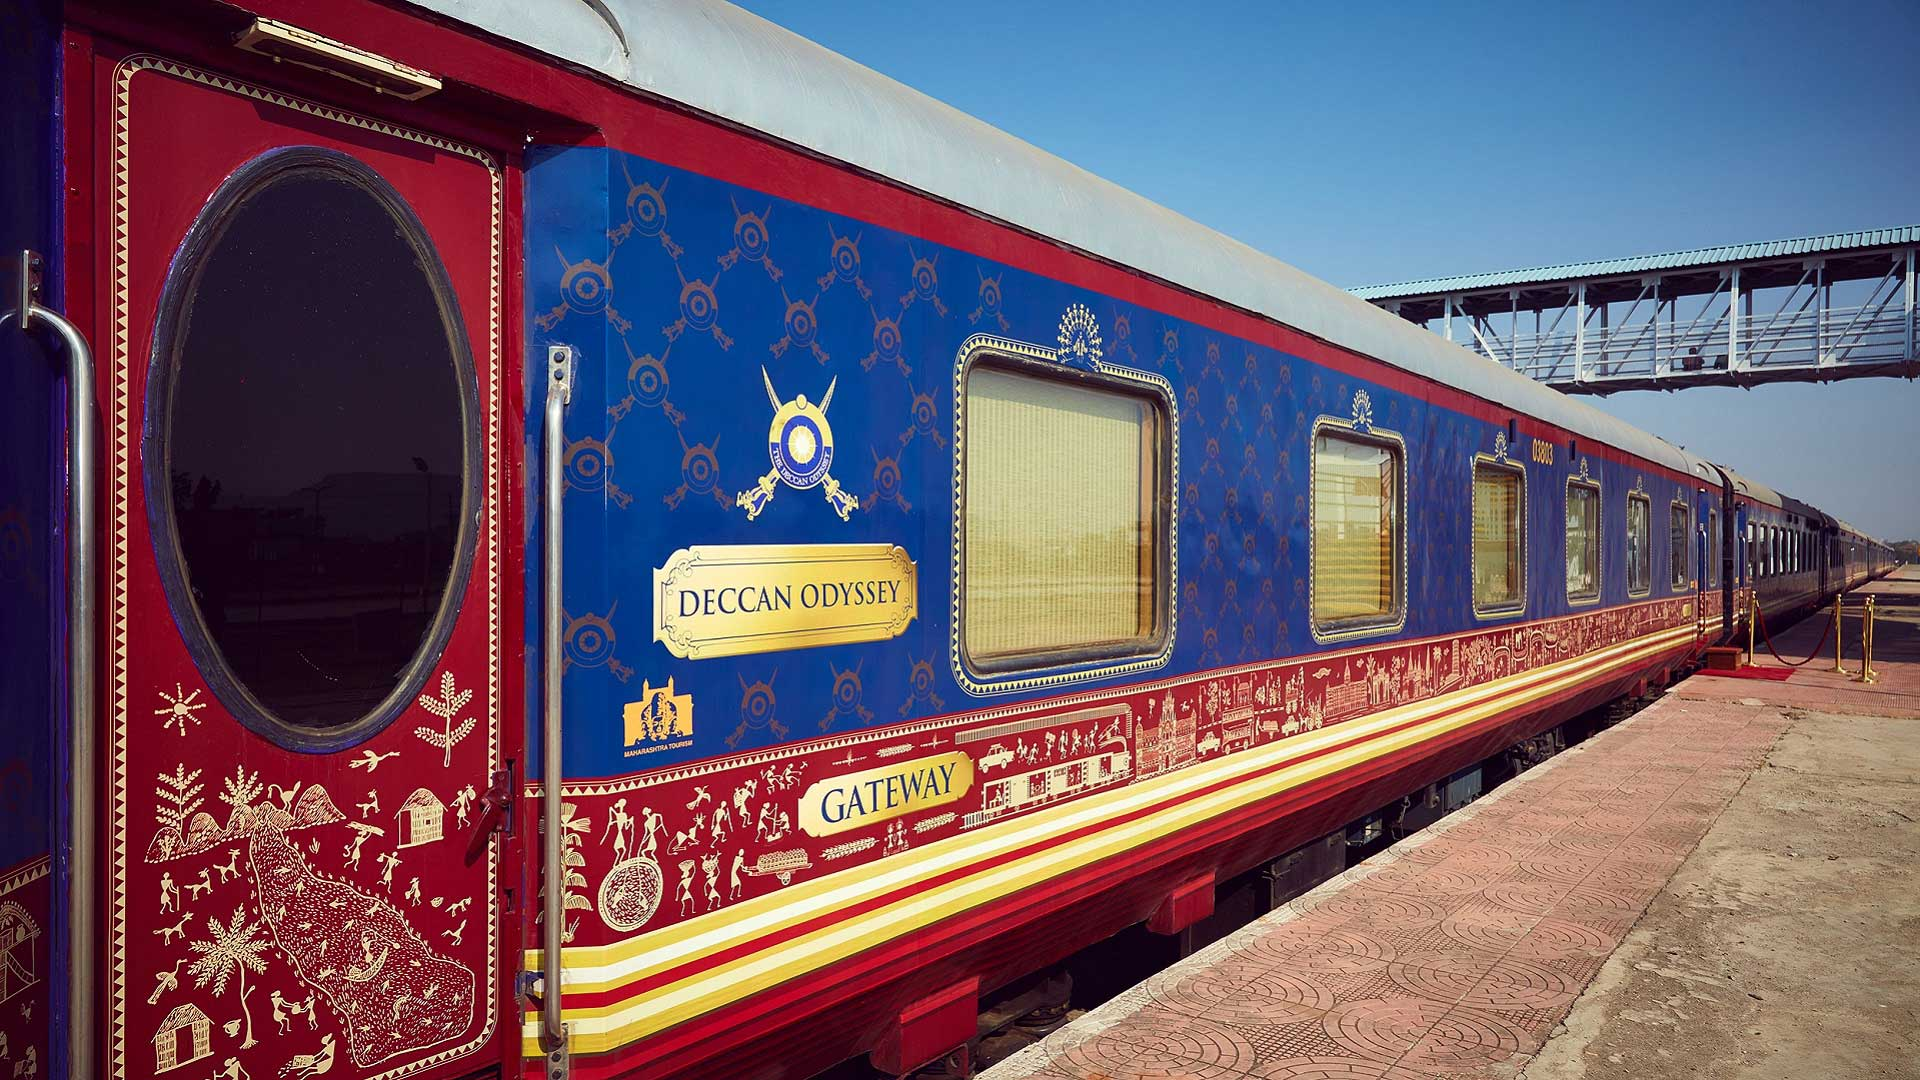 The Deccan Odyssey train at a station platform in India with GeoEx